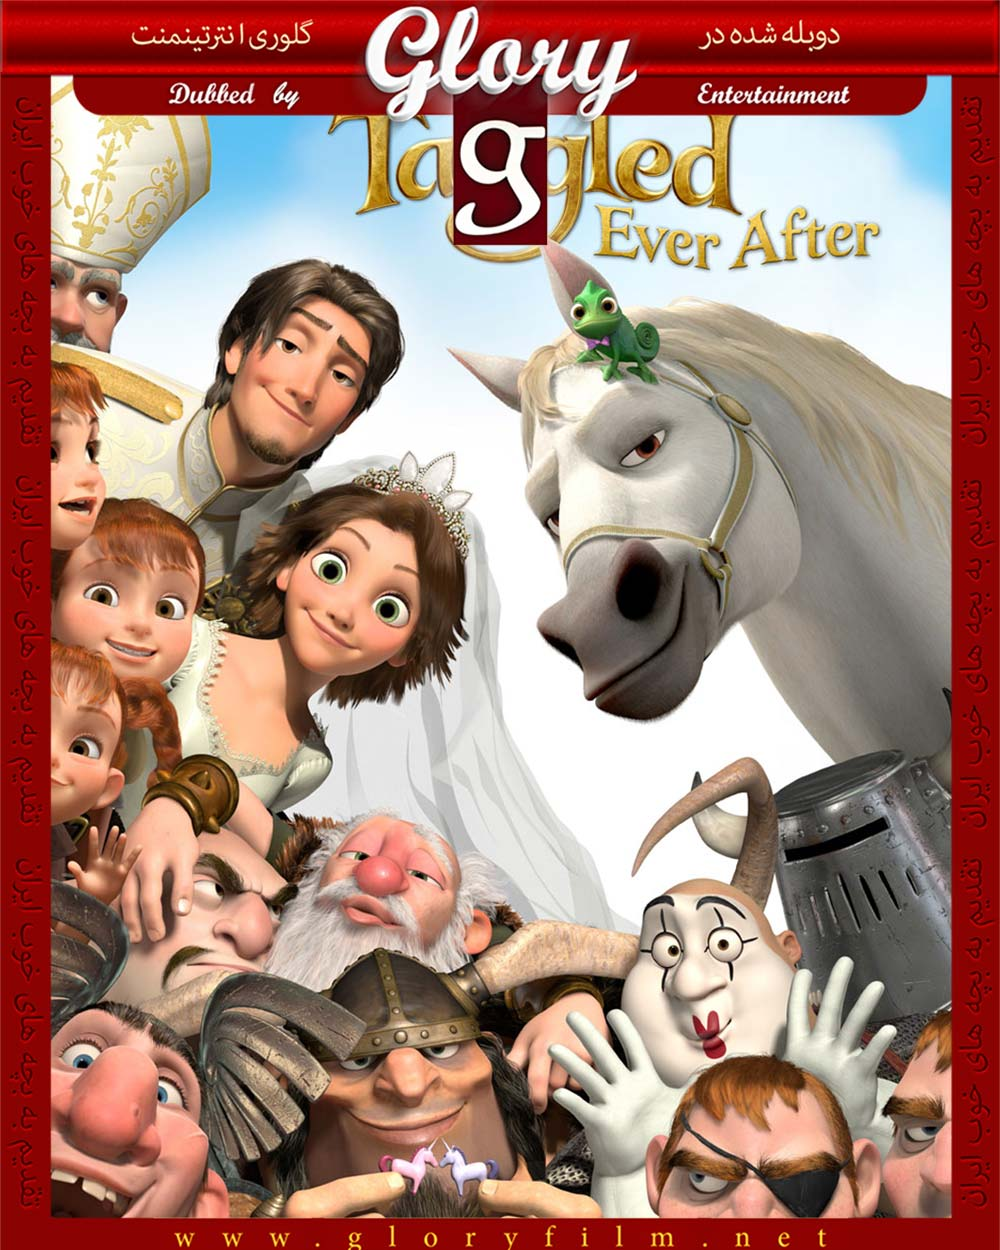 Tangled Ever After Glory Dubbed cover small دانلود دوبله فارسی انیمیشن کوتاه عروسی گیسو کمند   Tangled Ever After 2012